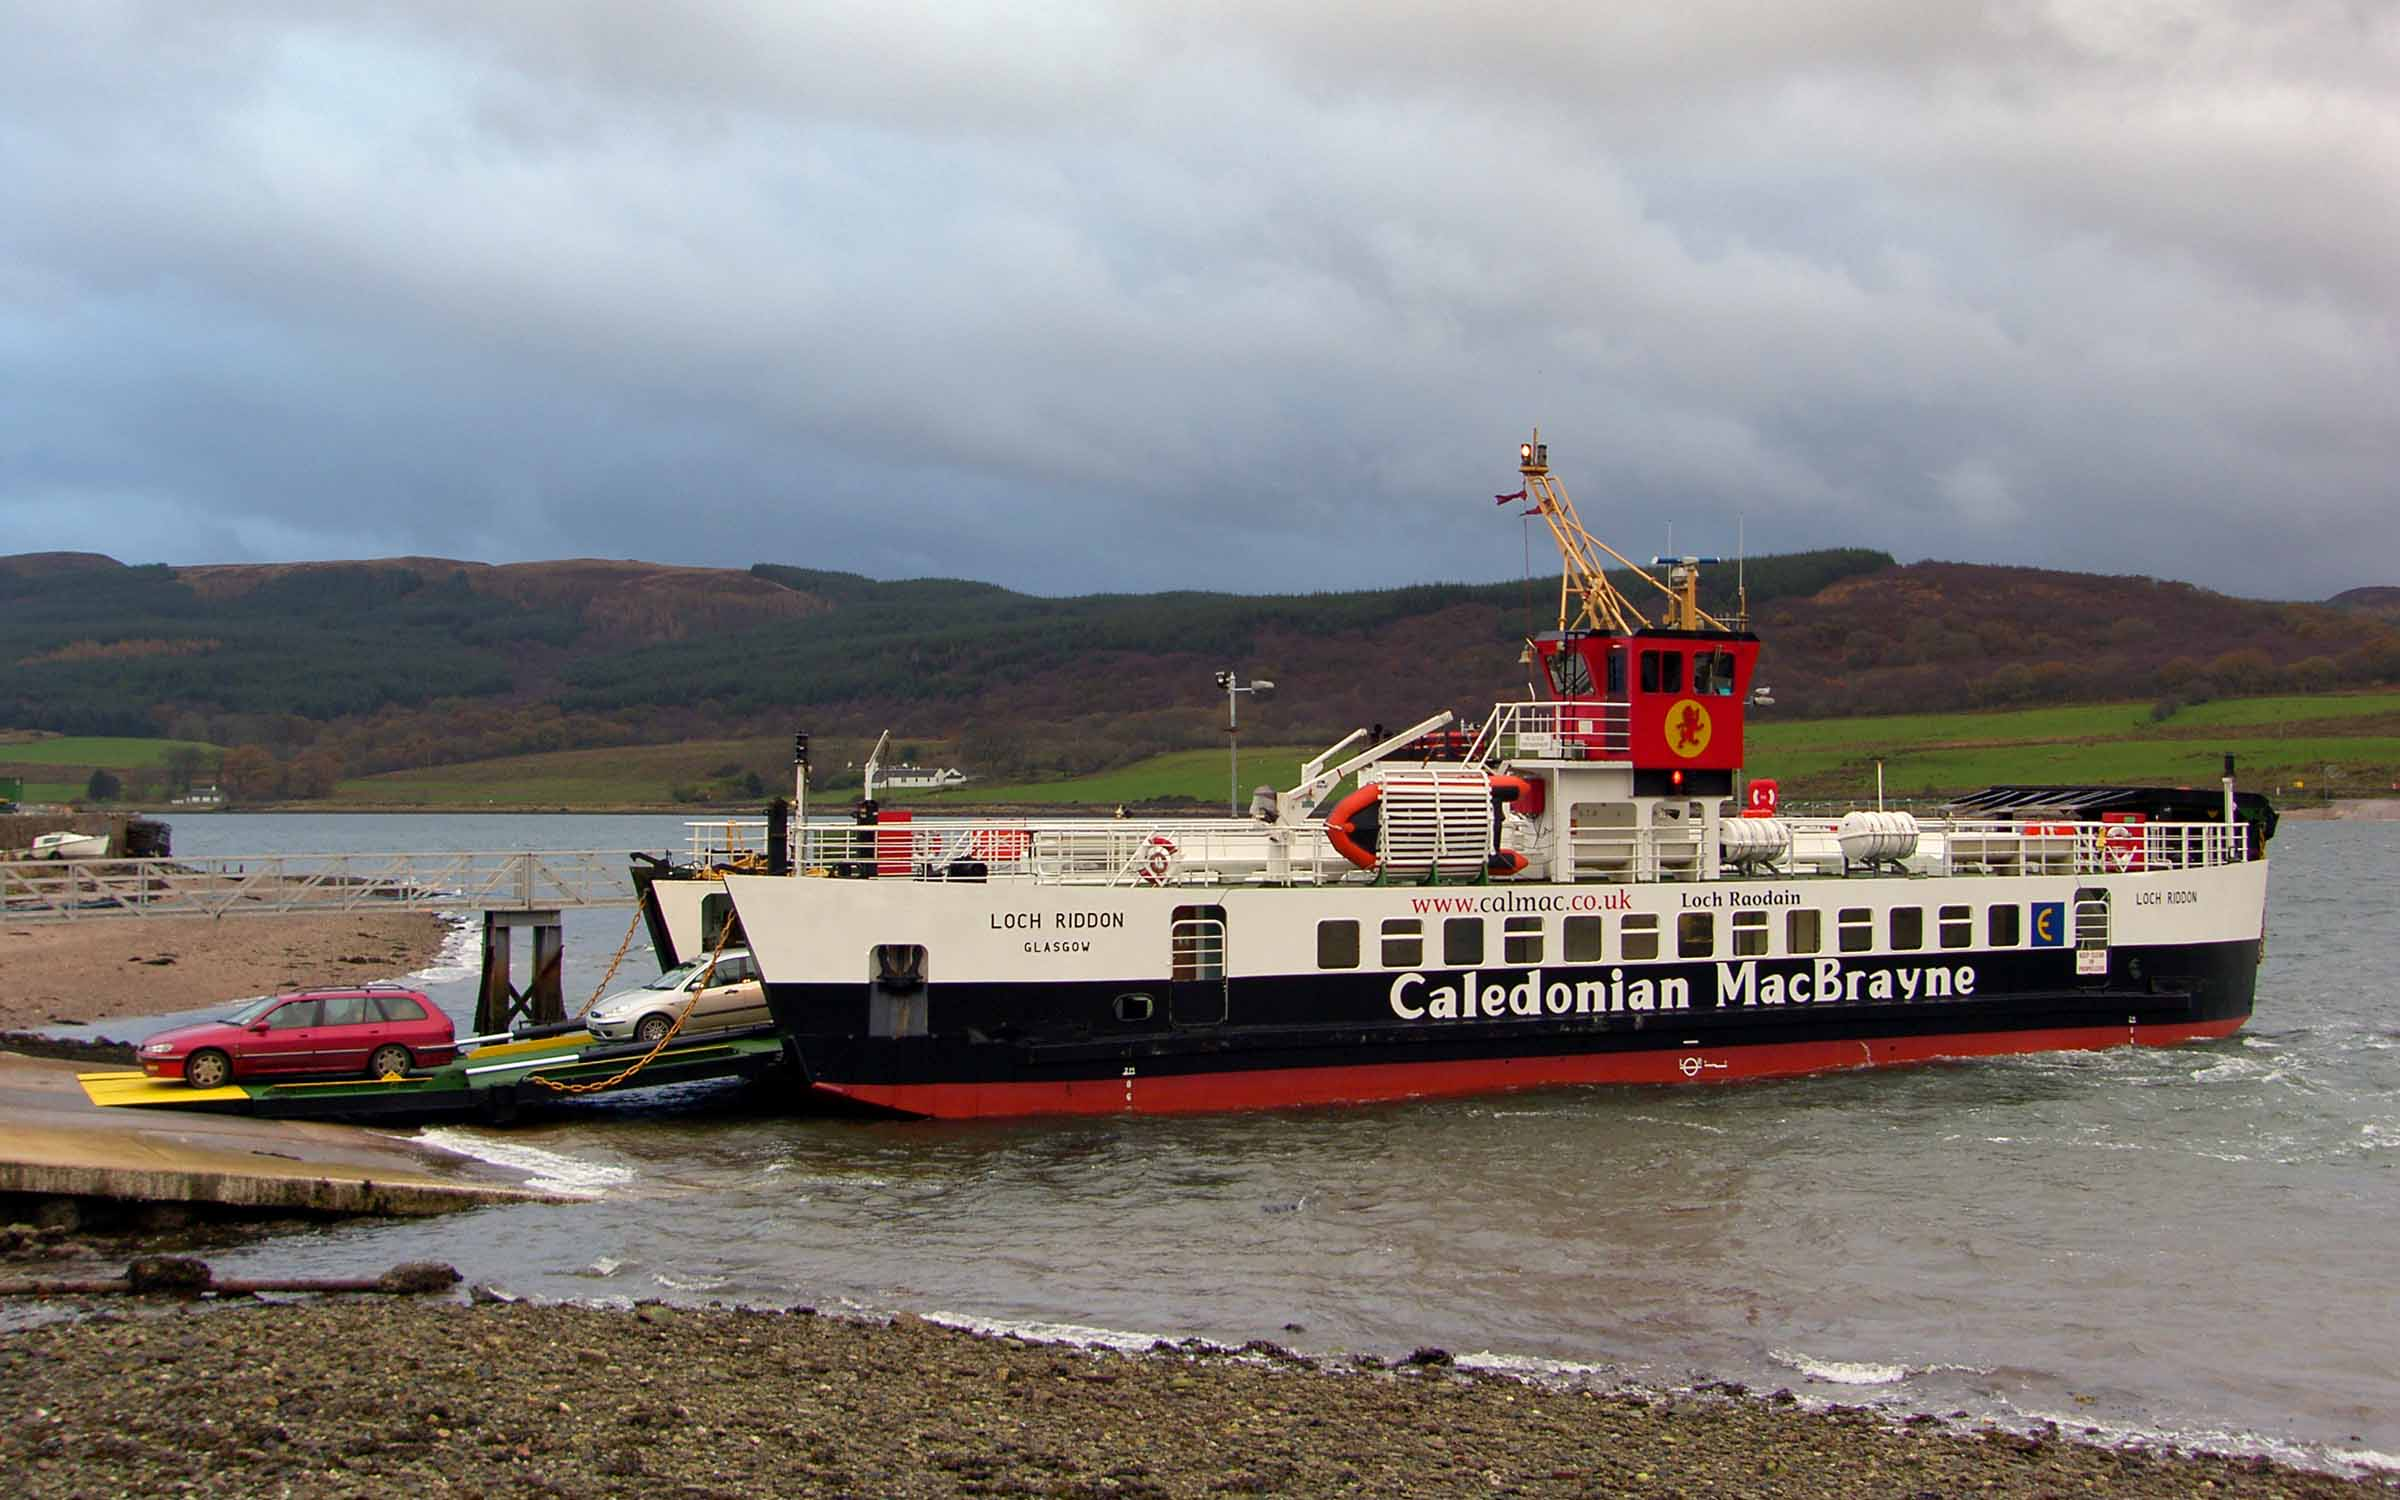 Loch Riddon at Colintraive (Ships of CalMac)